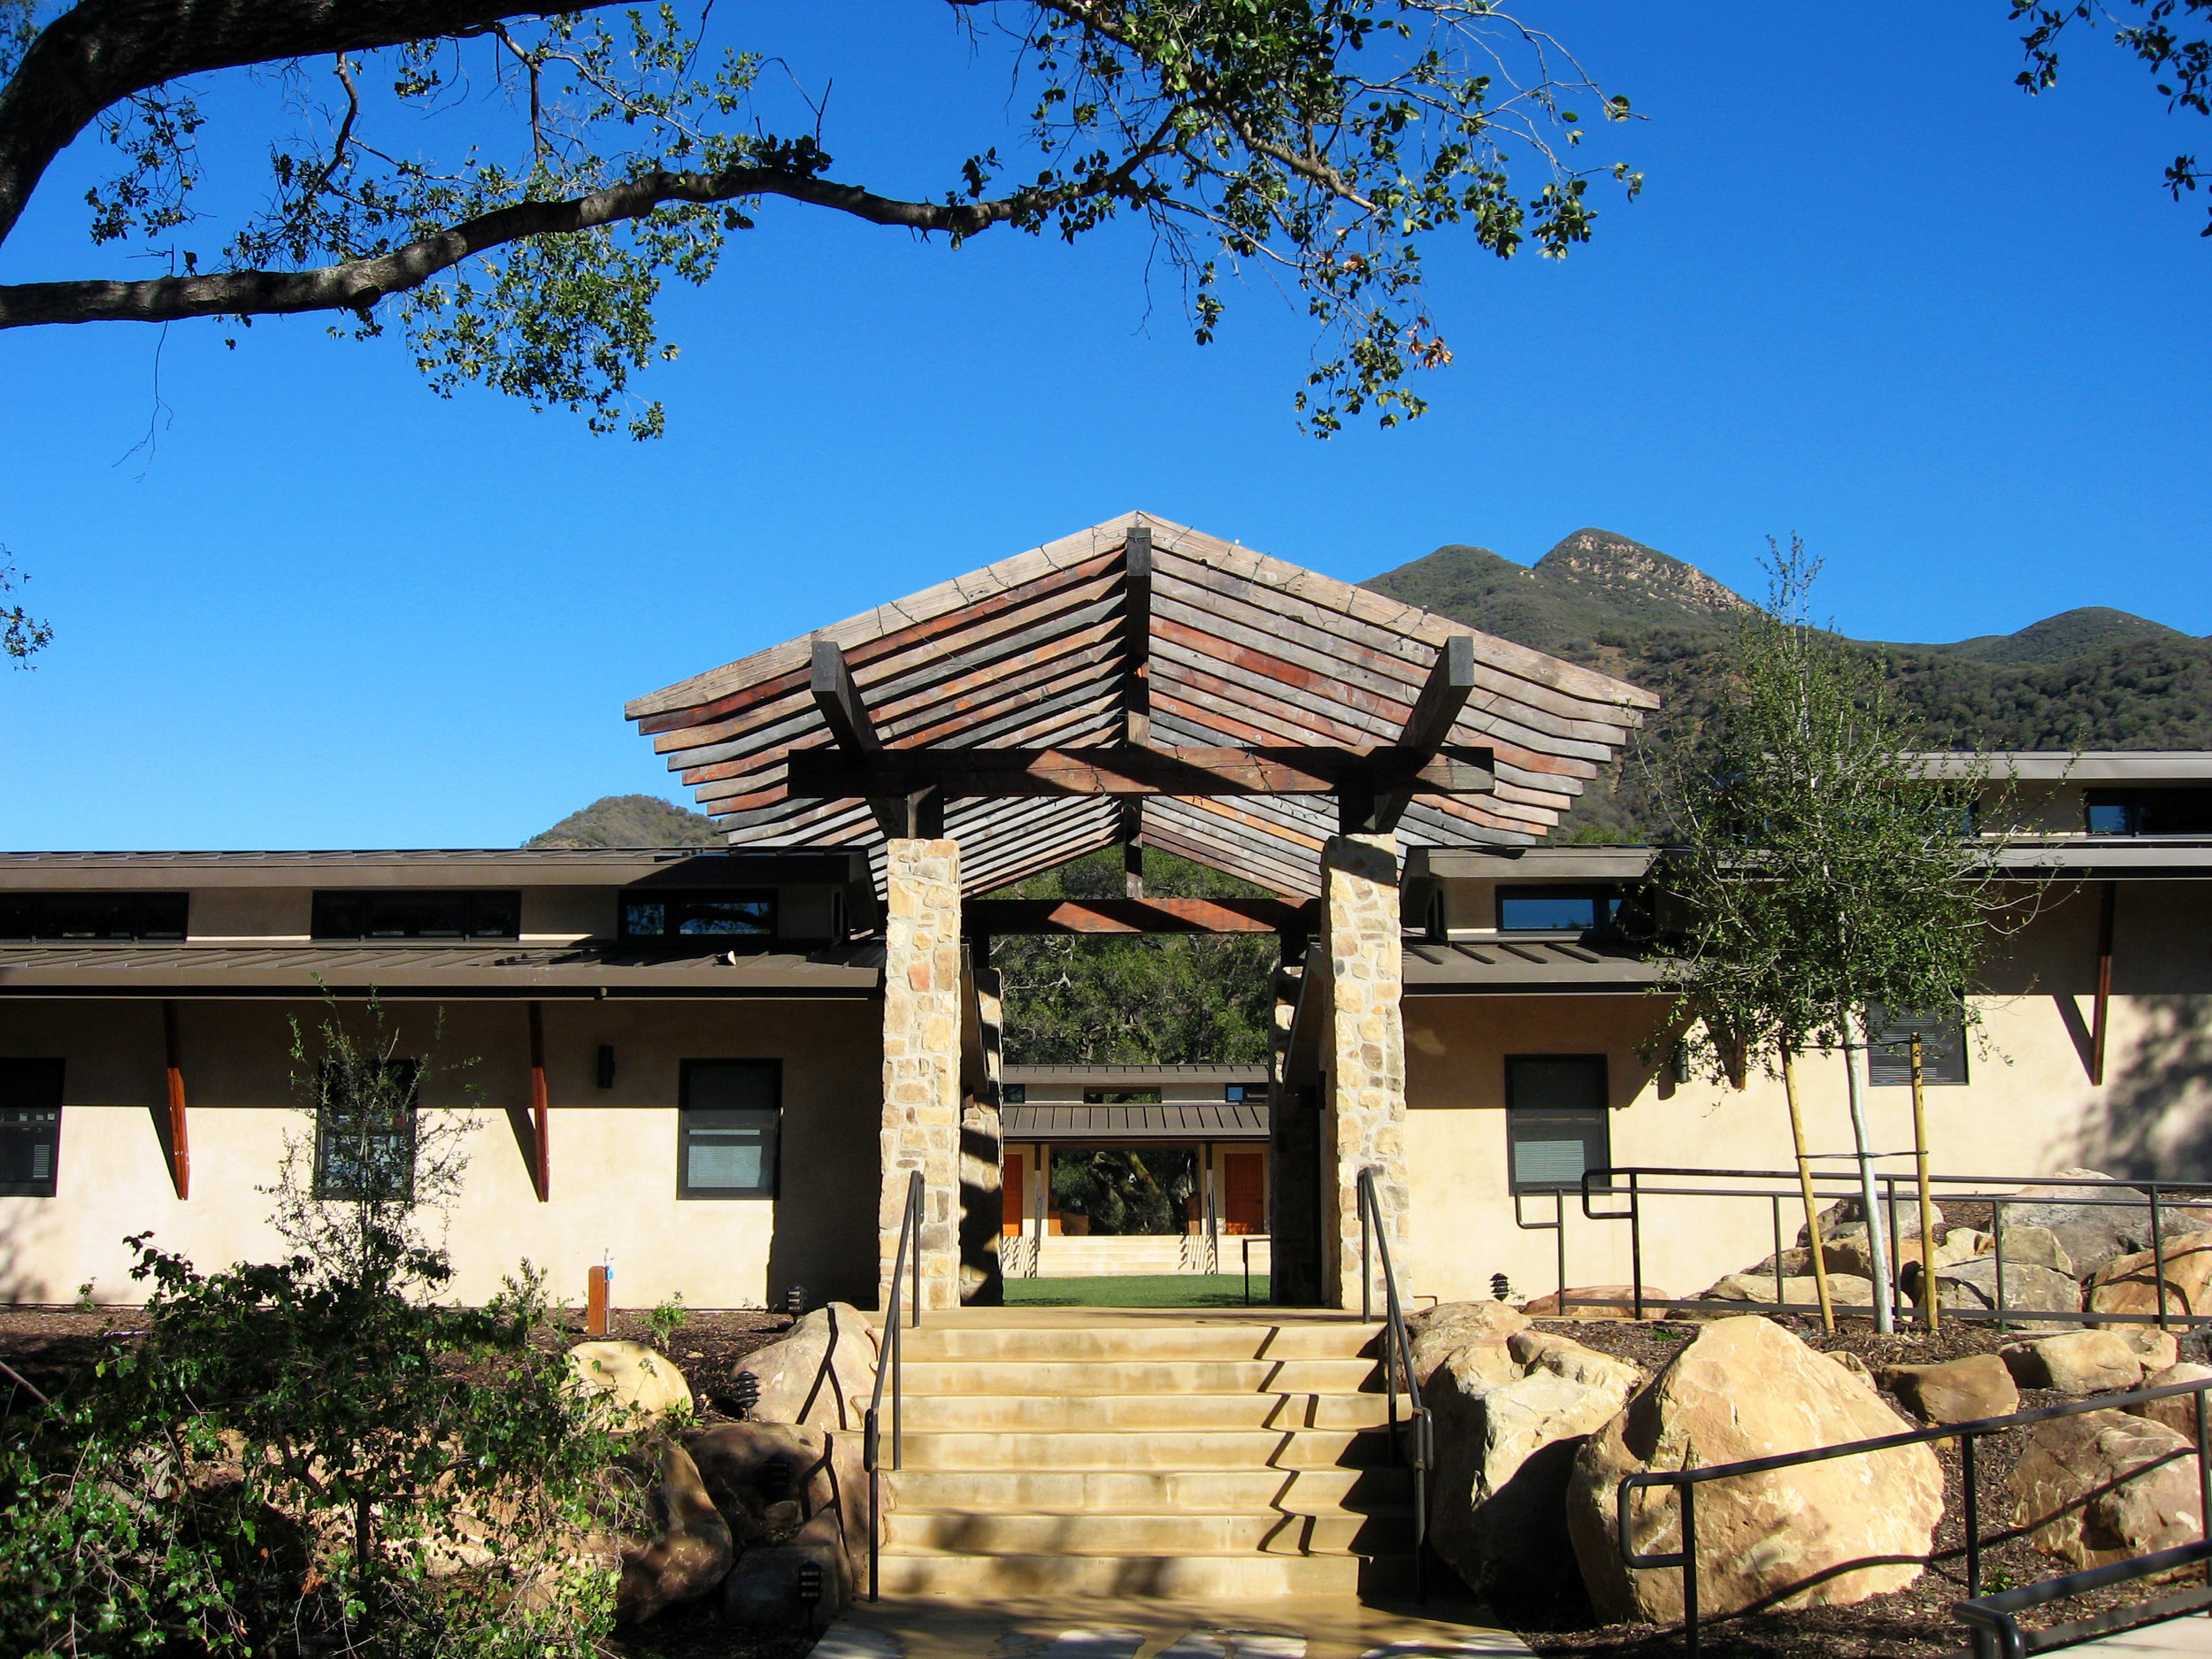 S.E.A.-Studio-Environmental-Architecture-David-Hertz-FAIA-Thacher-School-Dormitory-Ojai-sustainable-regenerative-restorative-green-design-educational-institutional-campus-master-plan-rustic-Ventura-mountain-scenic-biophilic-retreat-modern-ranch-11.jpg